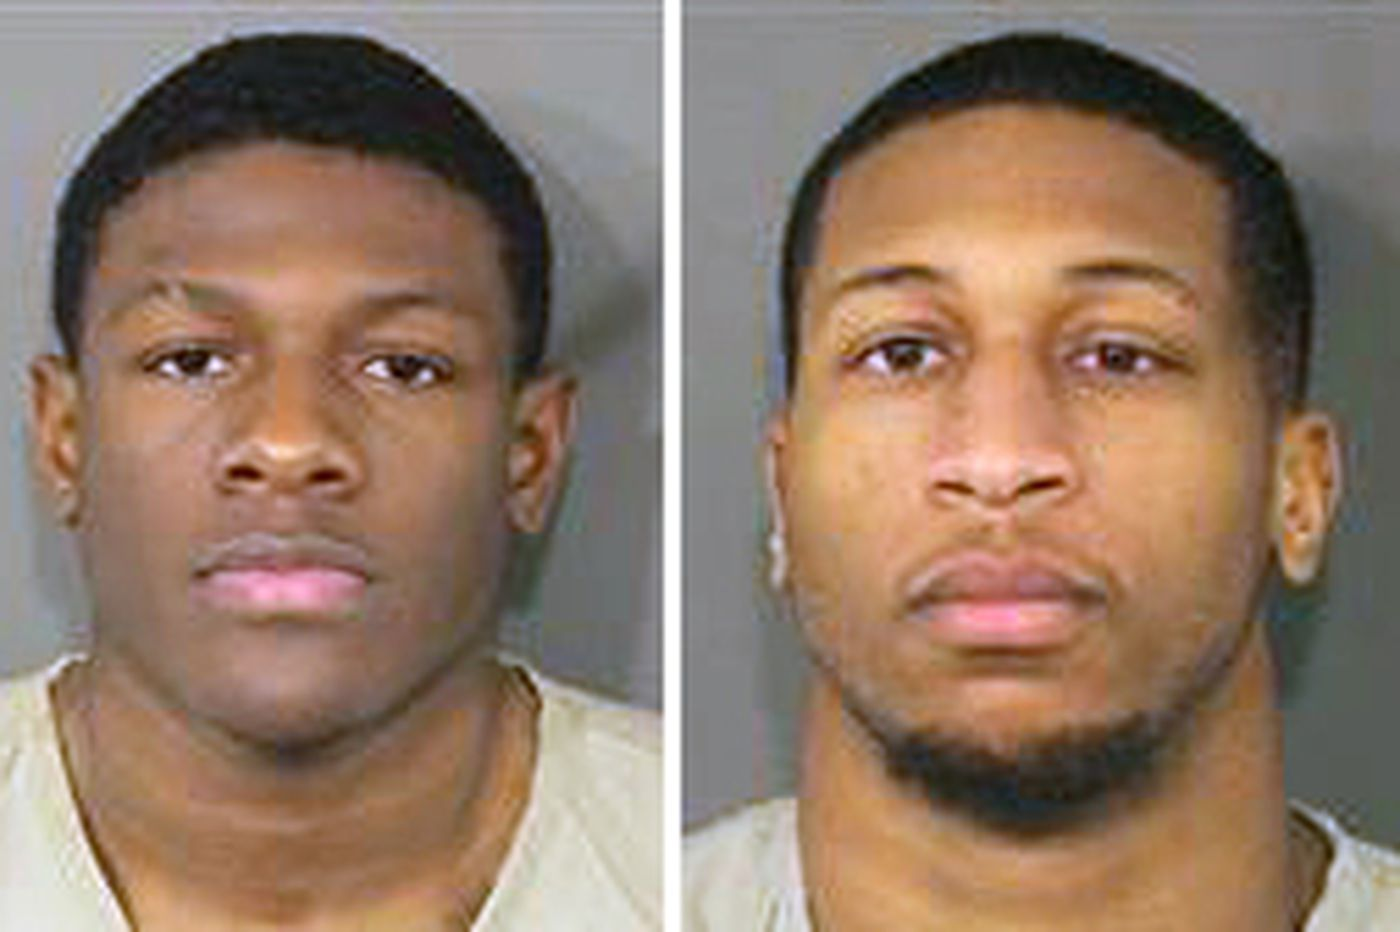 Ohio State football players Amir Riep and Jahsen Wint plead not guilty to rape charges